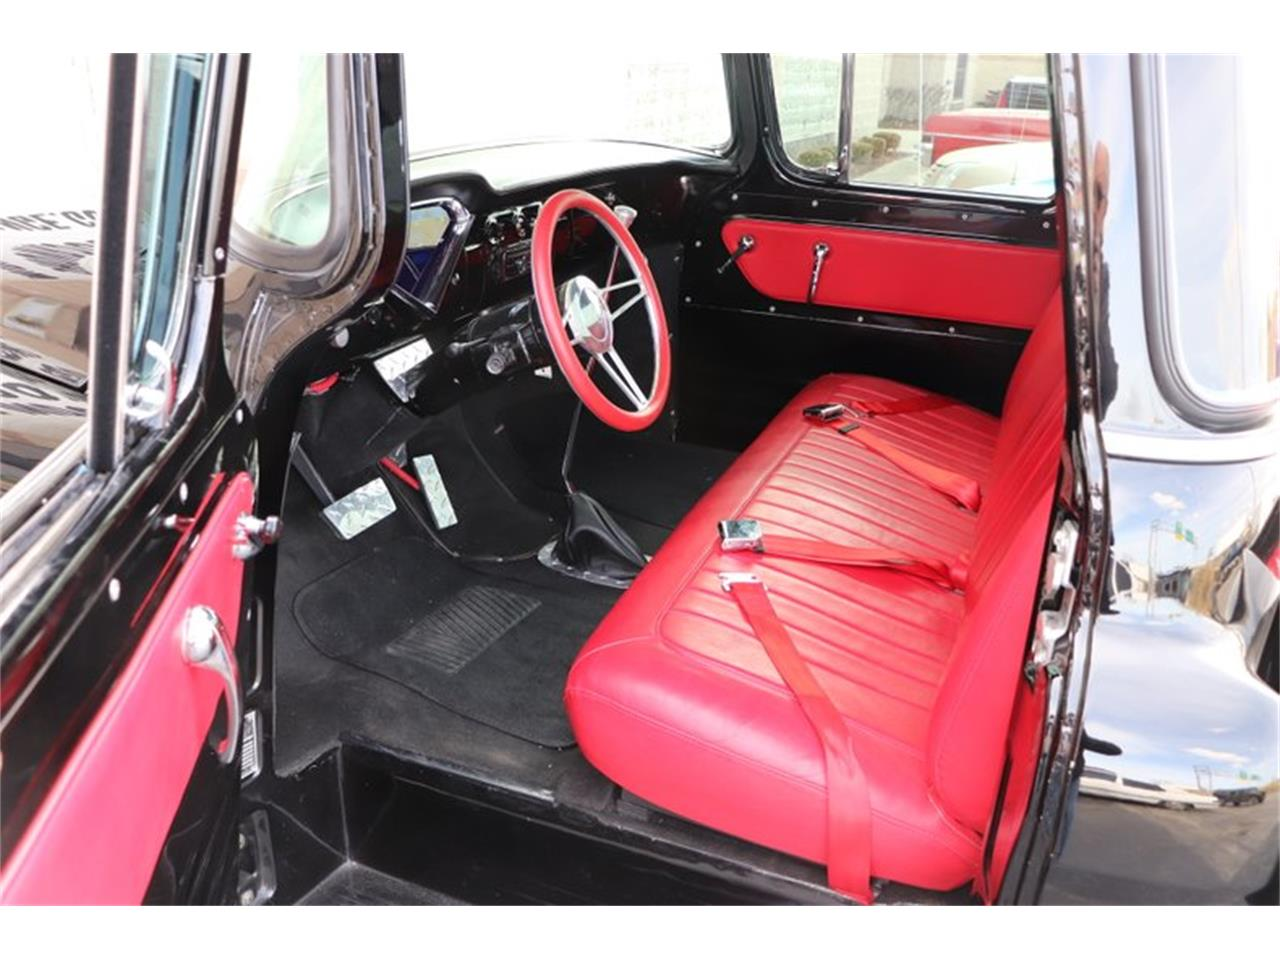 Large Picture of Classic 1957 Chevrolet 3100 located in Illinois Auction Vehicle Offered by Midwest Car Exchange - PT7T